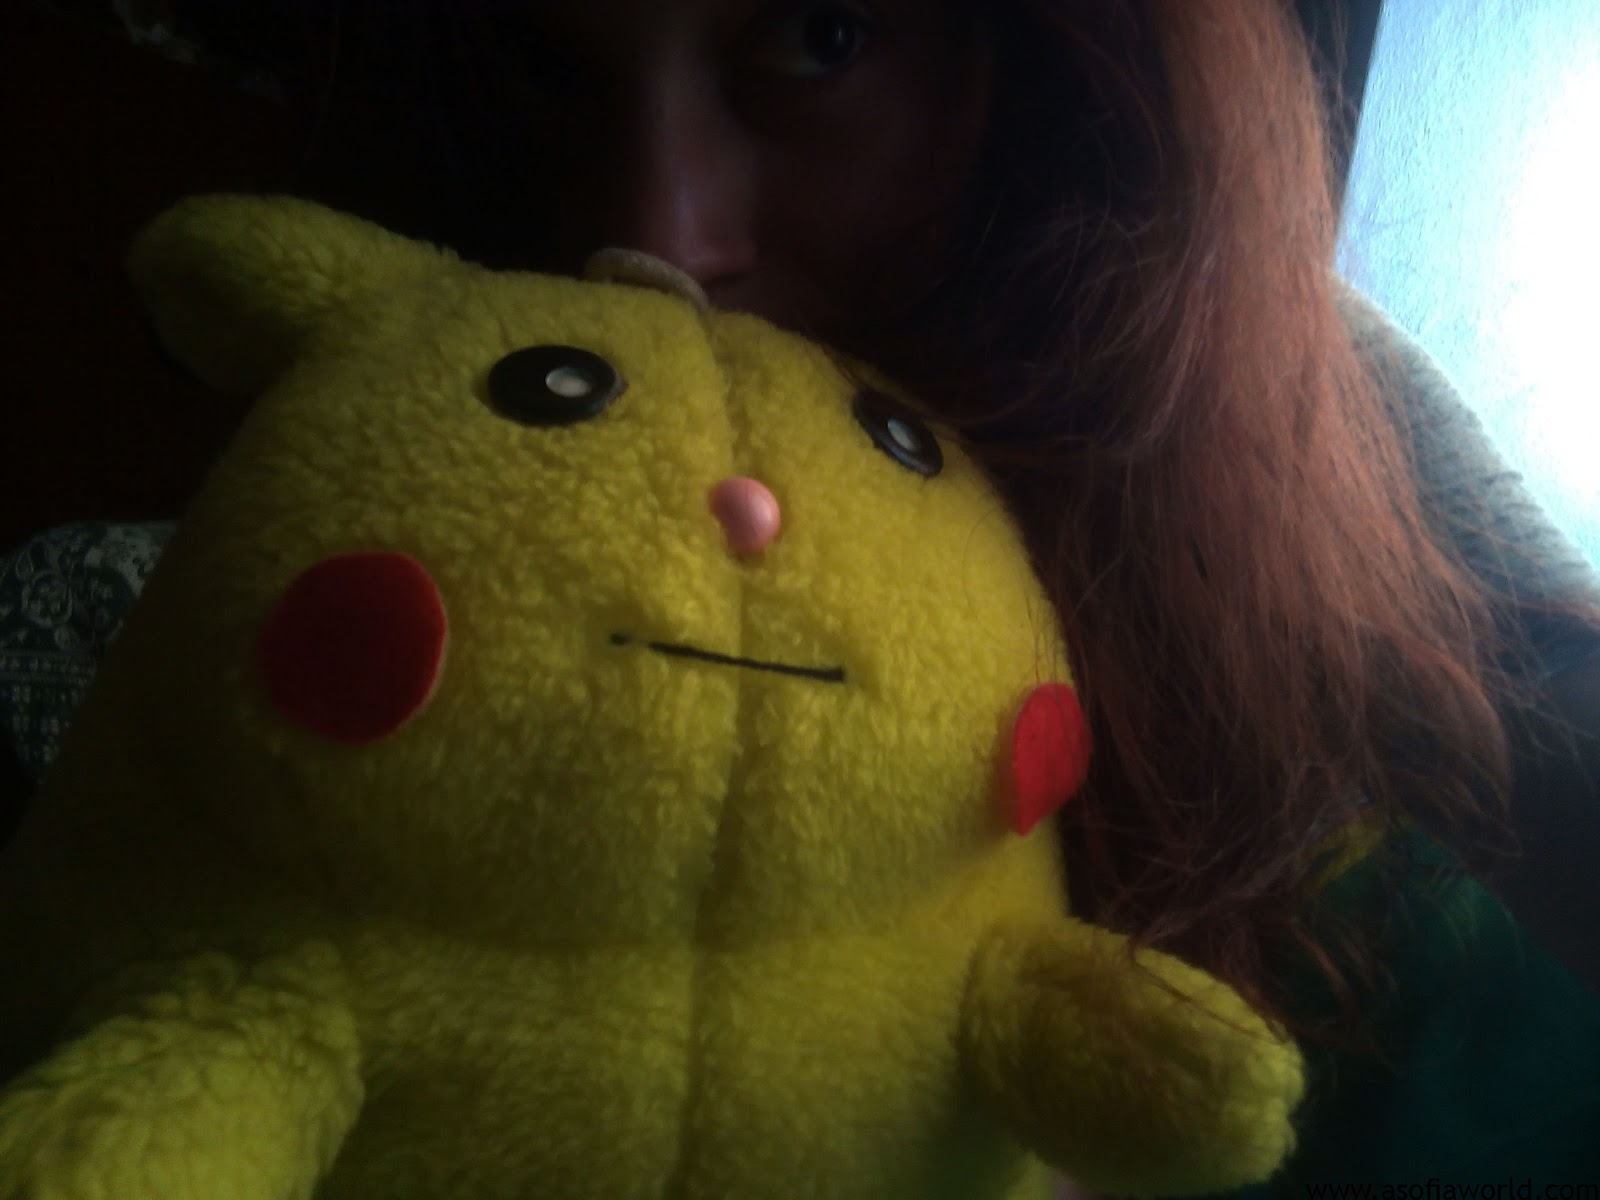 Pikachu, I choose you!